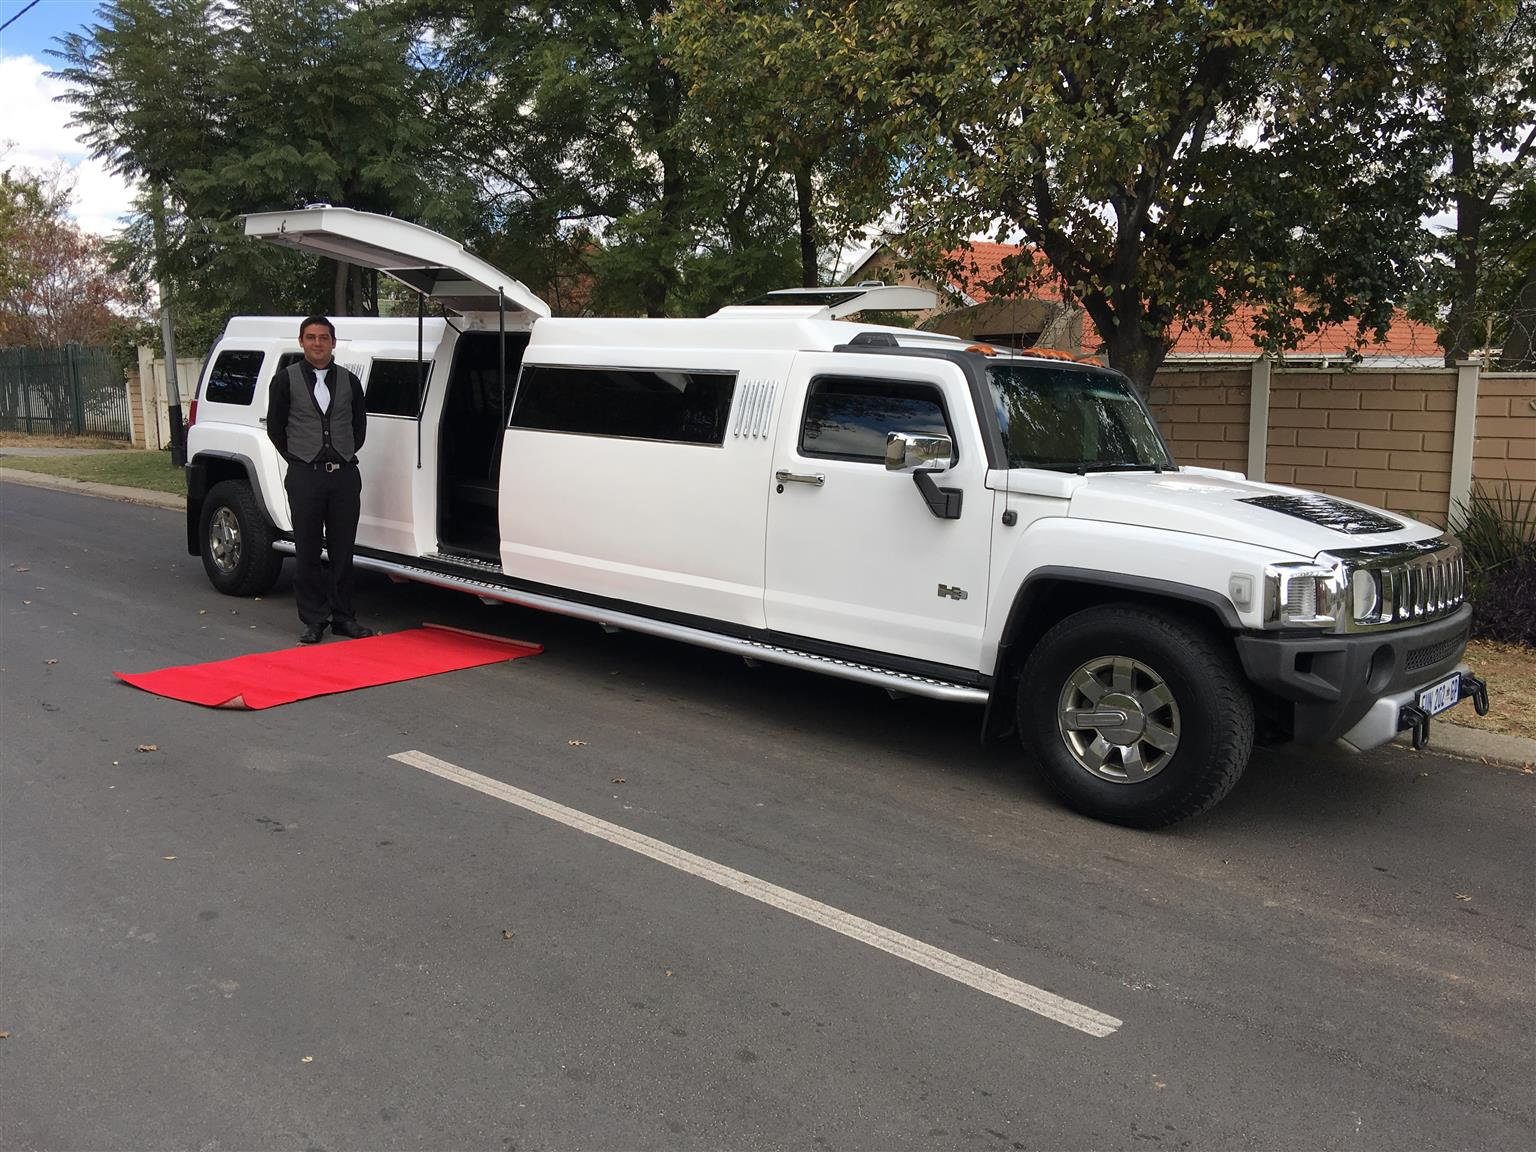 Hummersine and Limousine  Vehicles for Hire